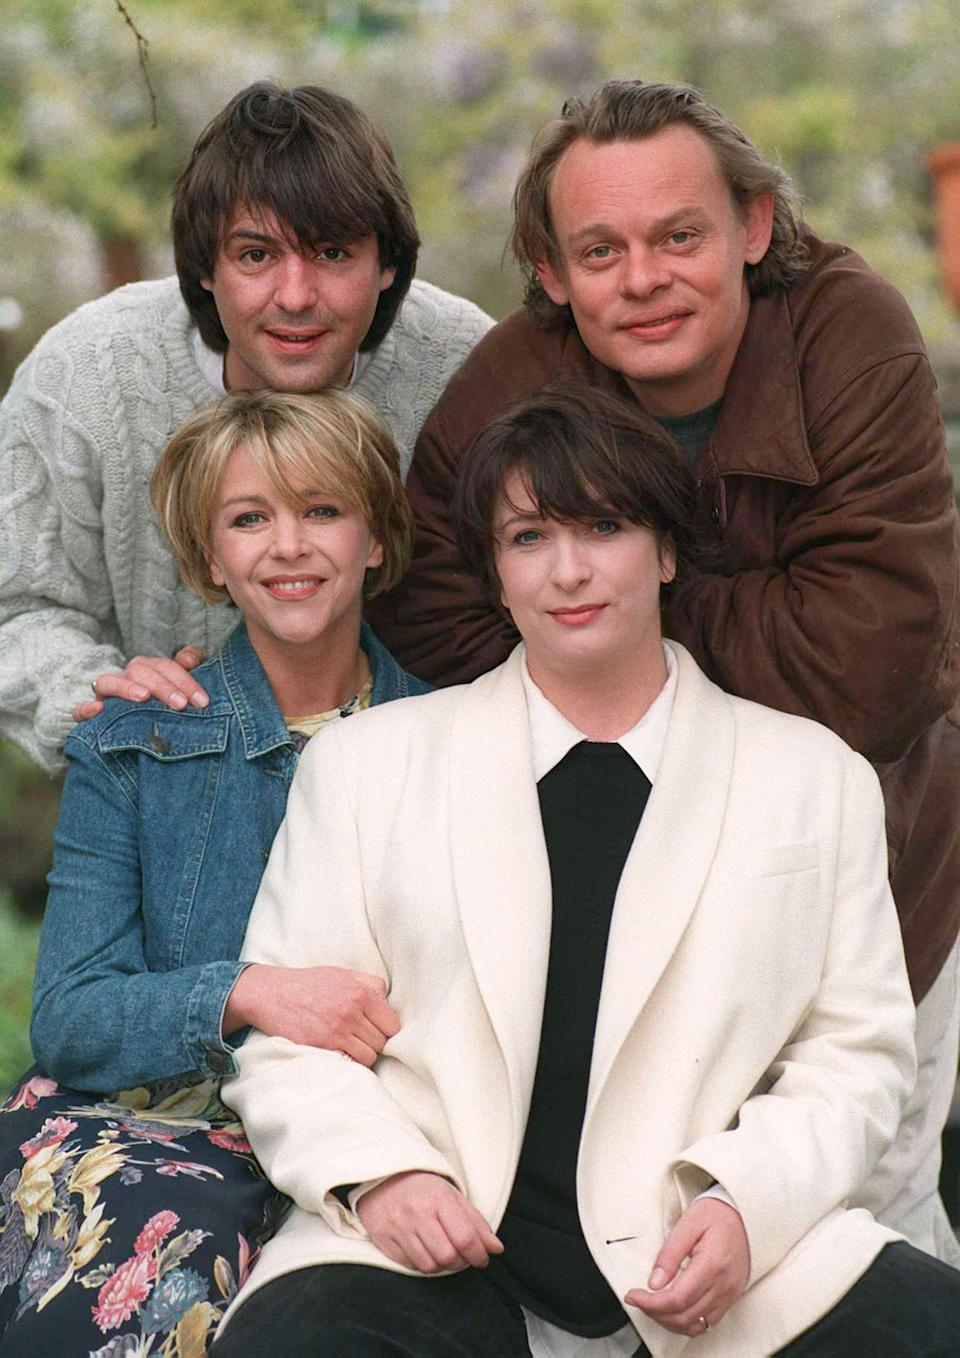 Neil Morrissey starred in Men Behaving Badly with Martin Clunes, Leslie Ash (bottom left) and Caroline Quentin. (Photo by Rebecca Naden - PA Images/PA Images via Getty Images)